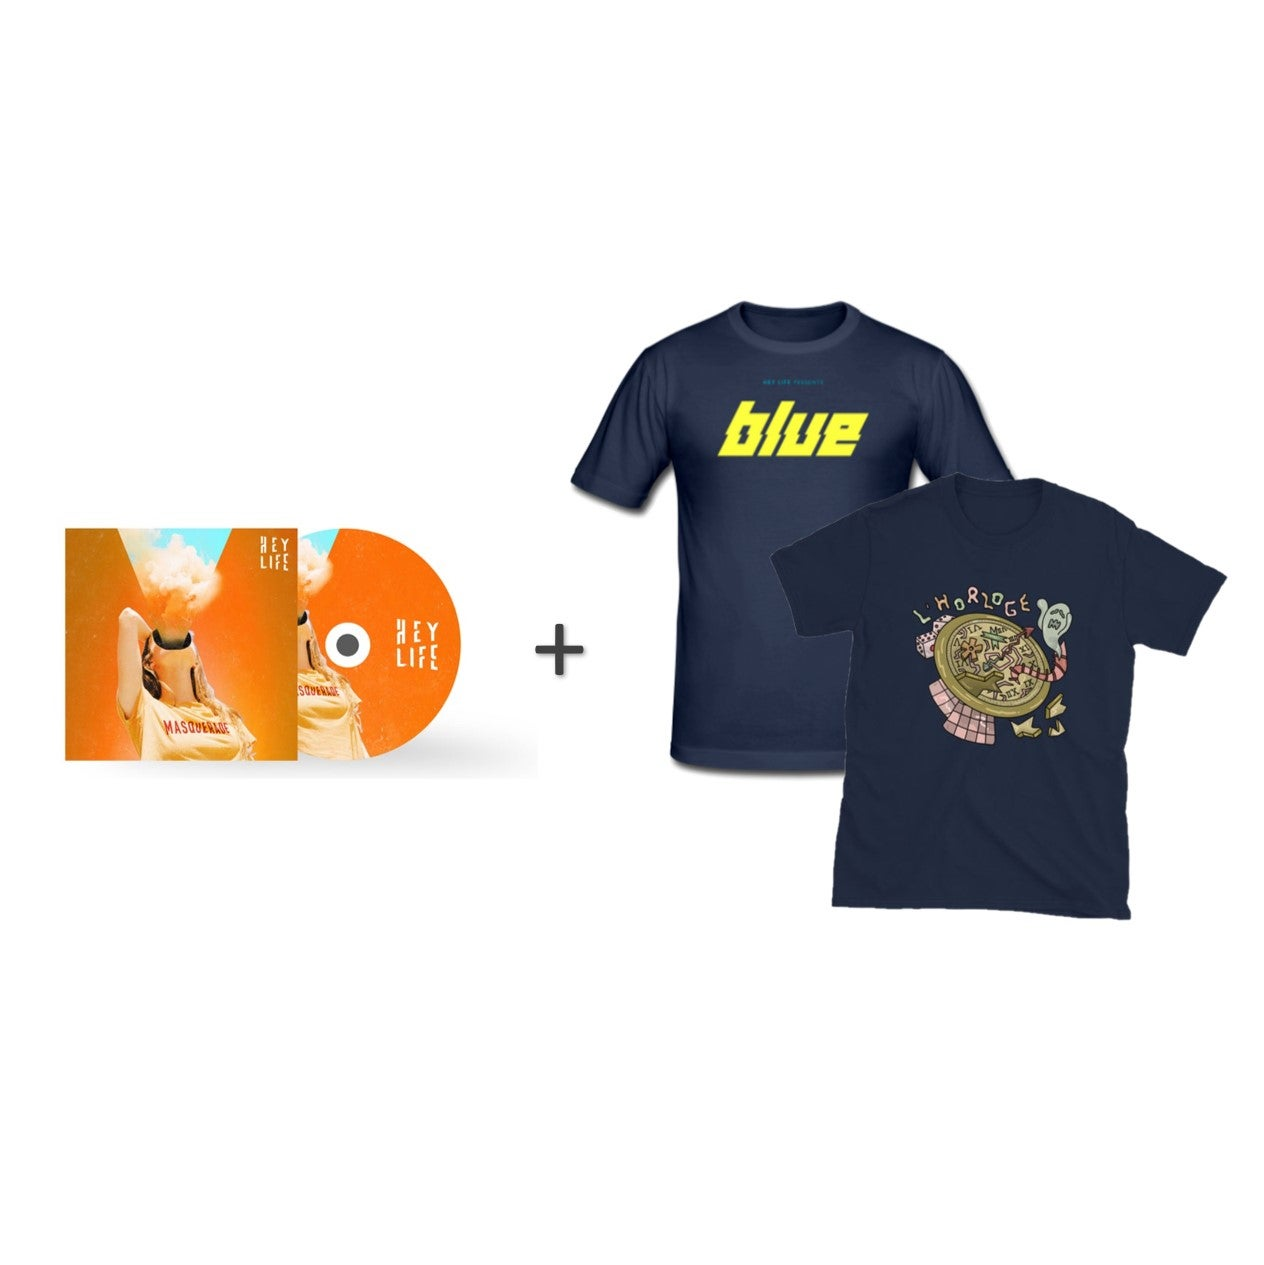 BUNDLE 'Blue/L'Horloge' - SIGNED EP + 2 T-SHIRTS